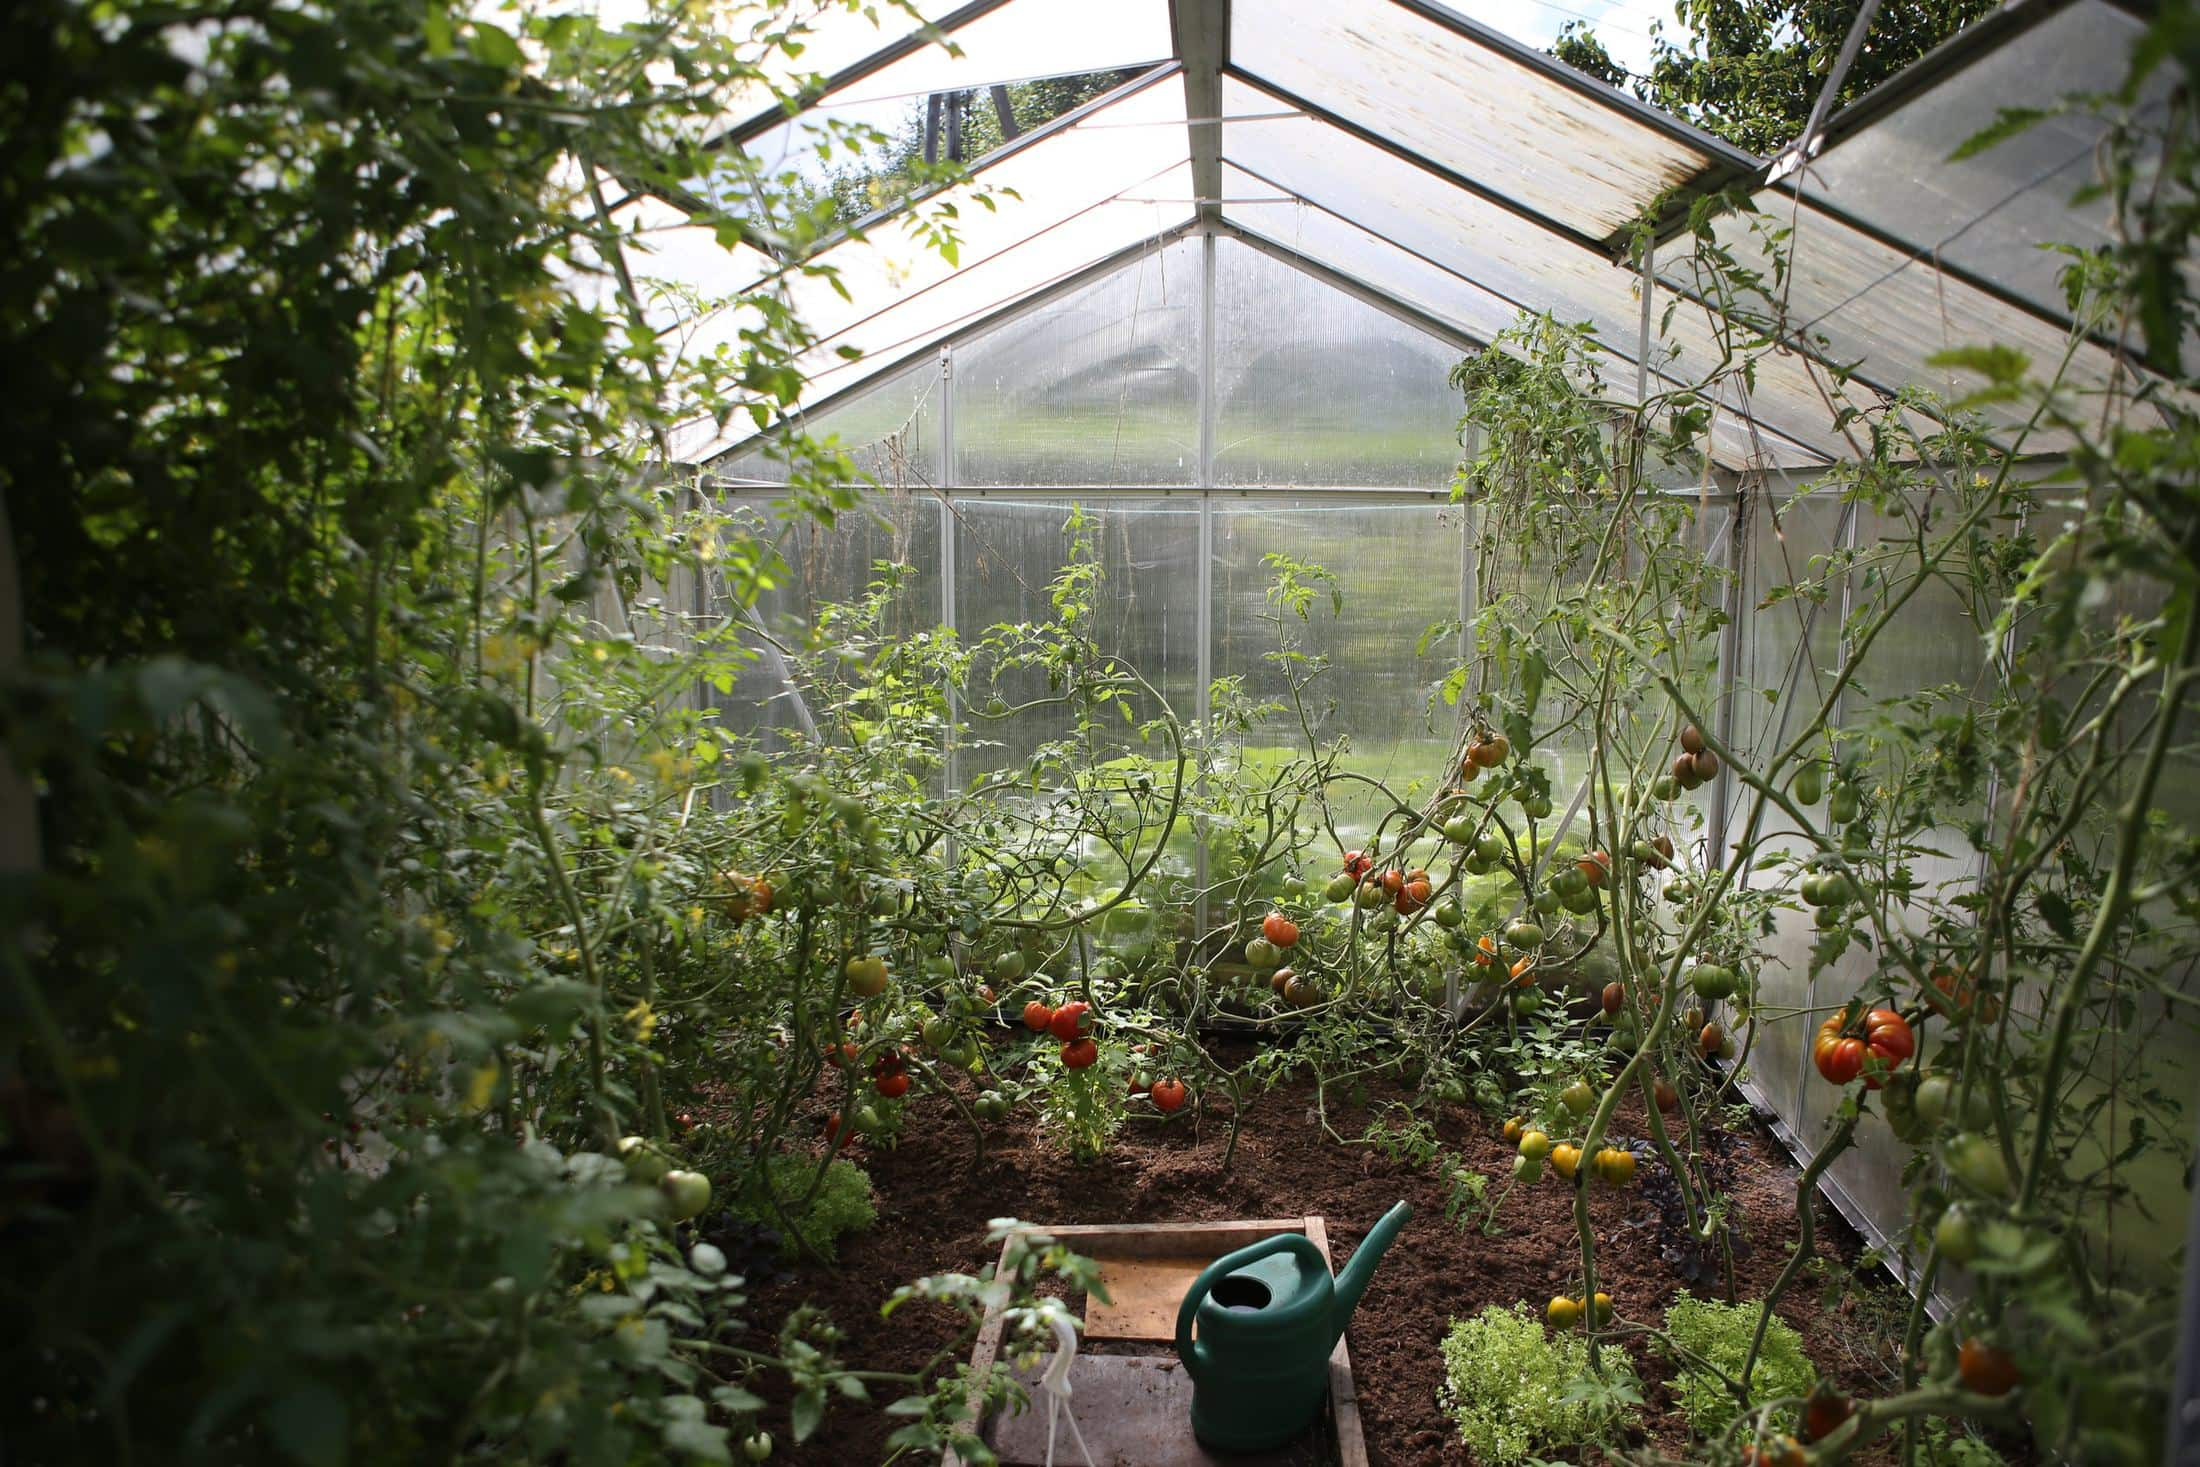 green watering can in green house